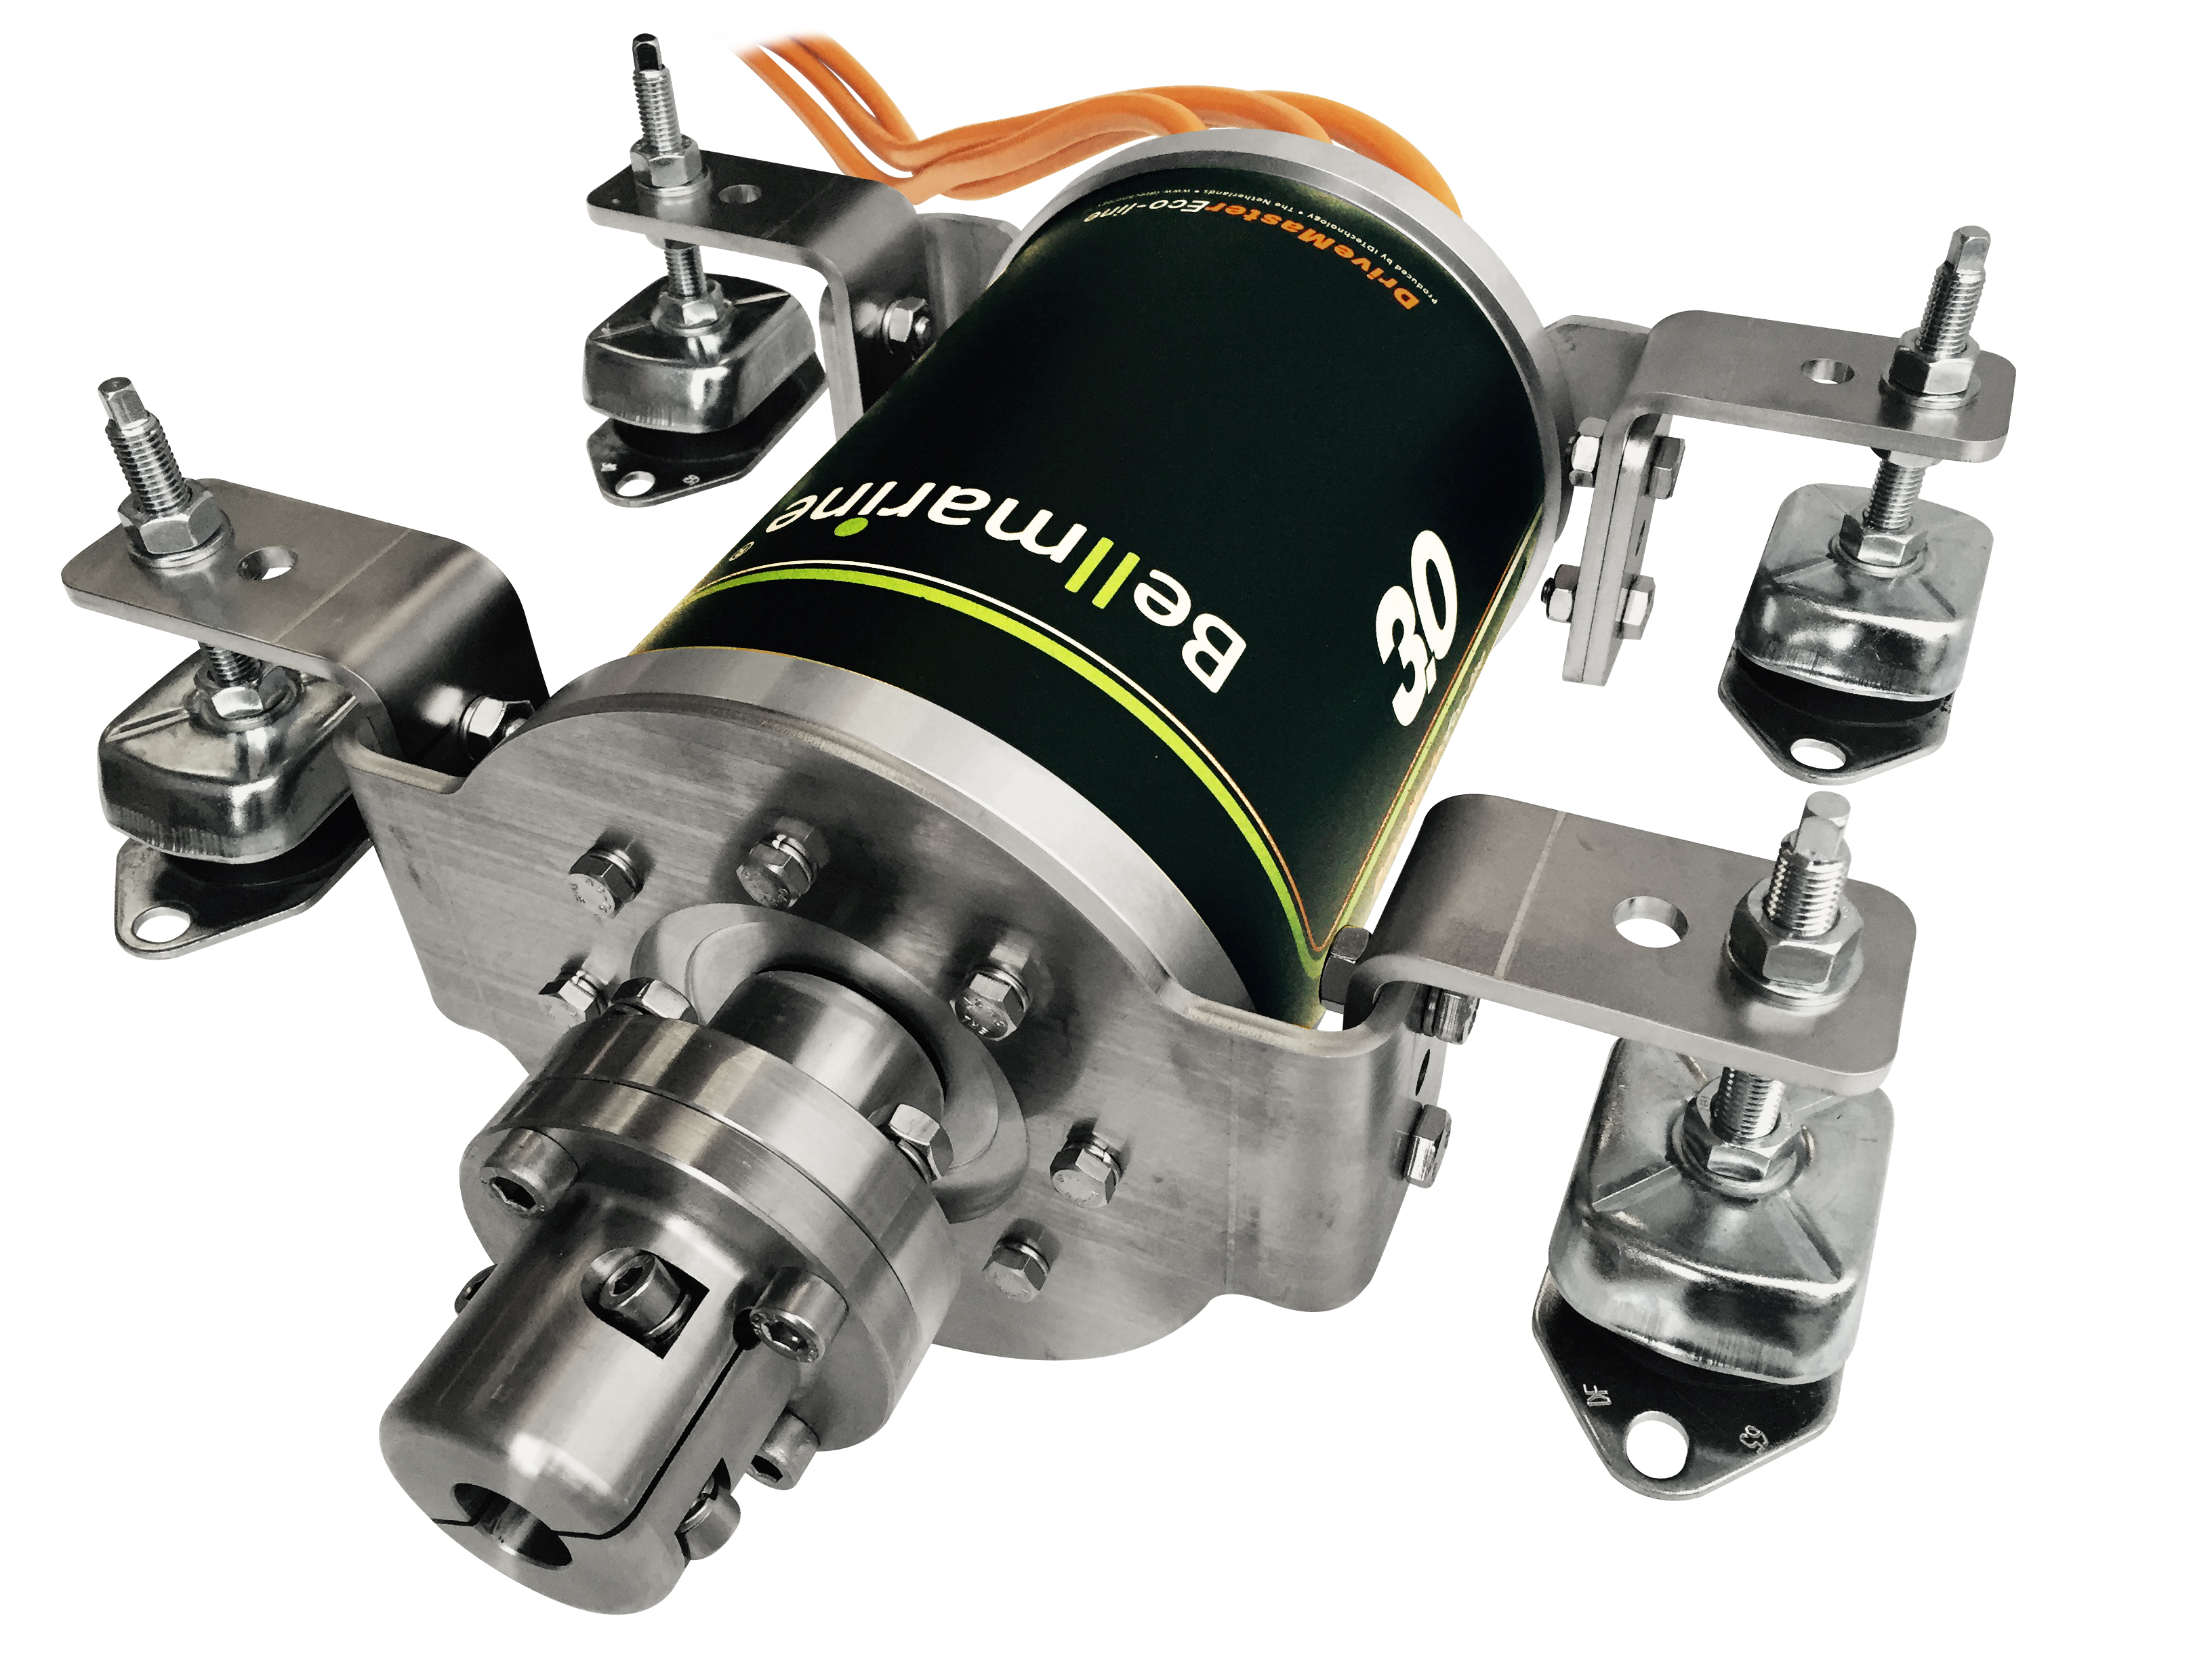 Bellmarine drivemaster eco line electric inboard eco for Electric motors and drives